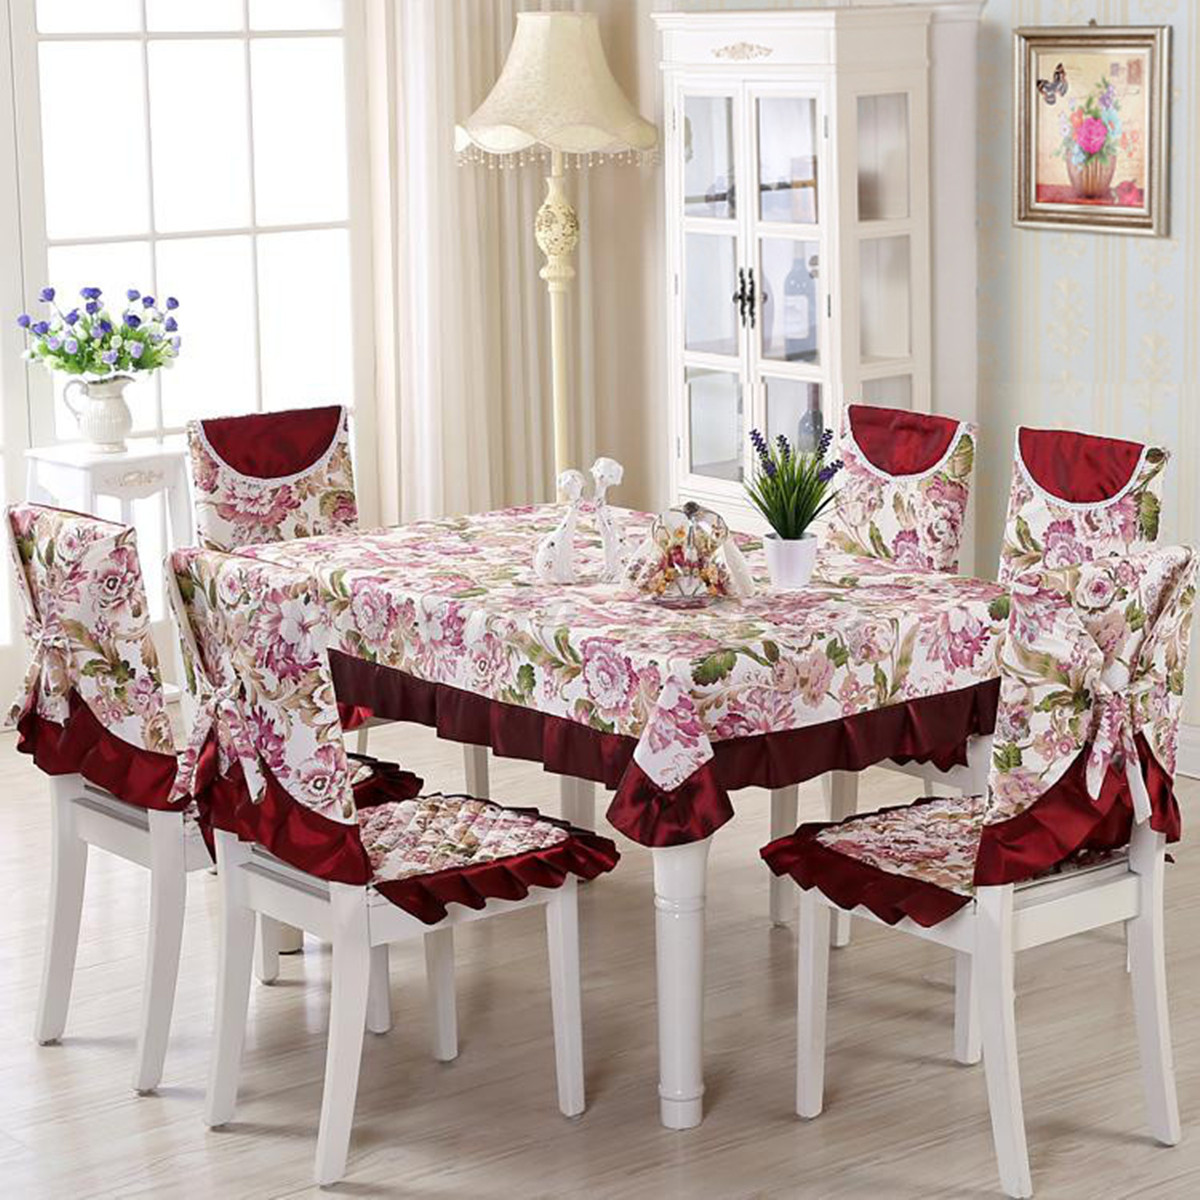 table and chair covers ebay ladies office vintage floral tablecloths cover polyester banquet